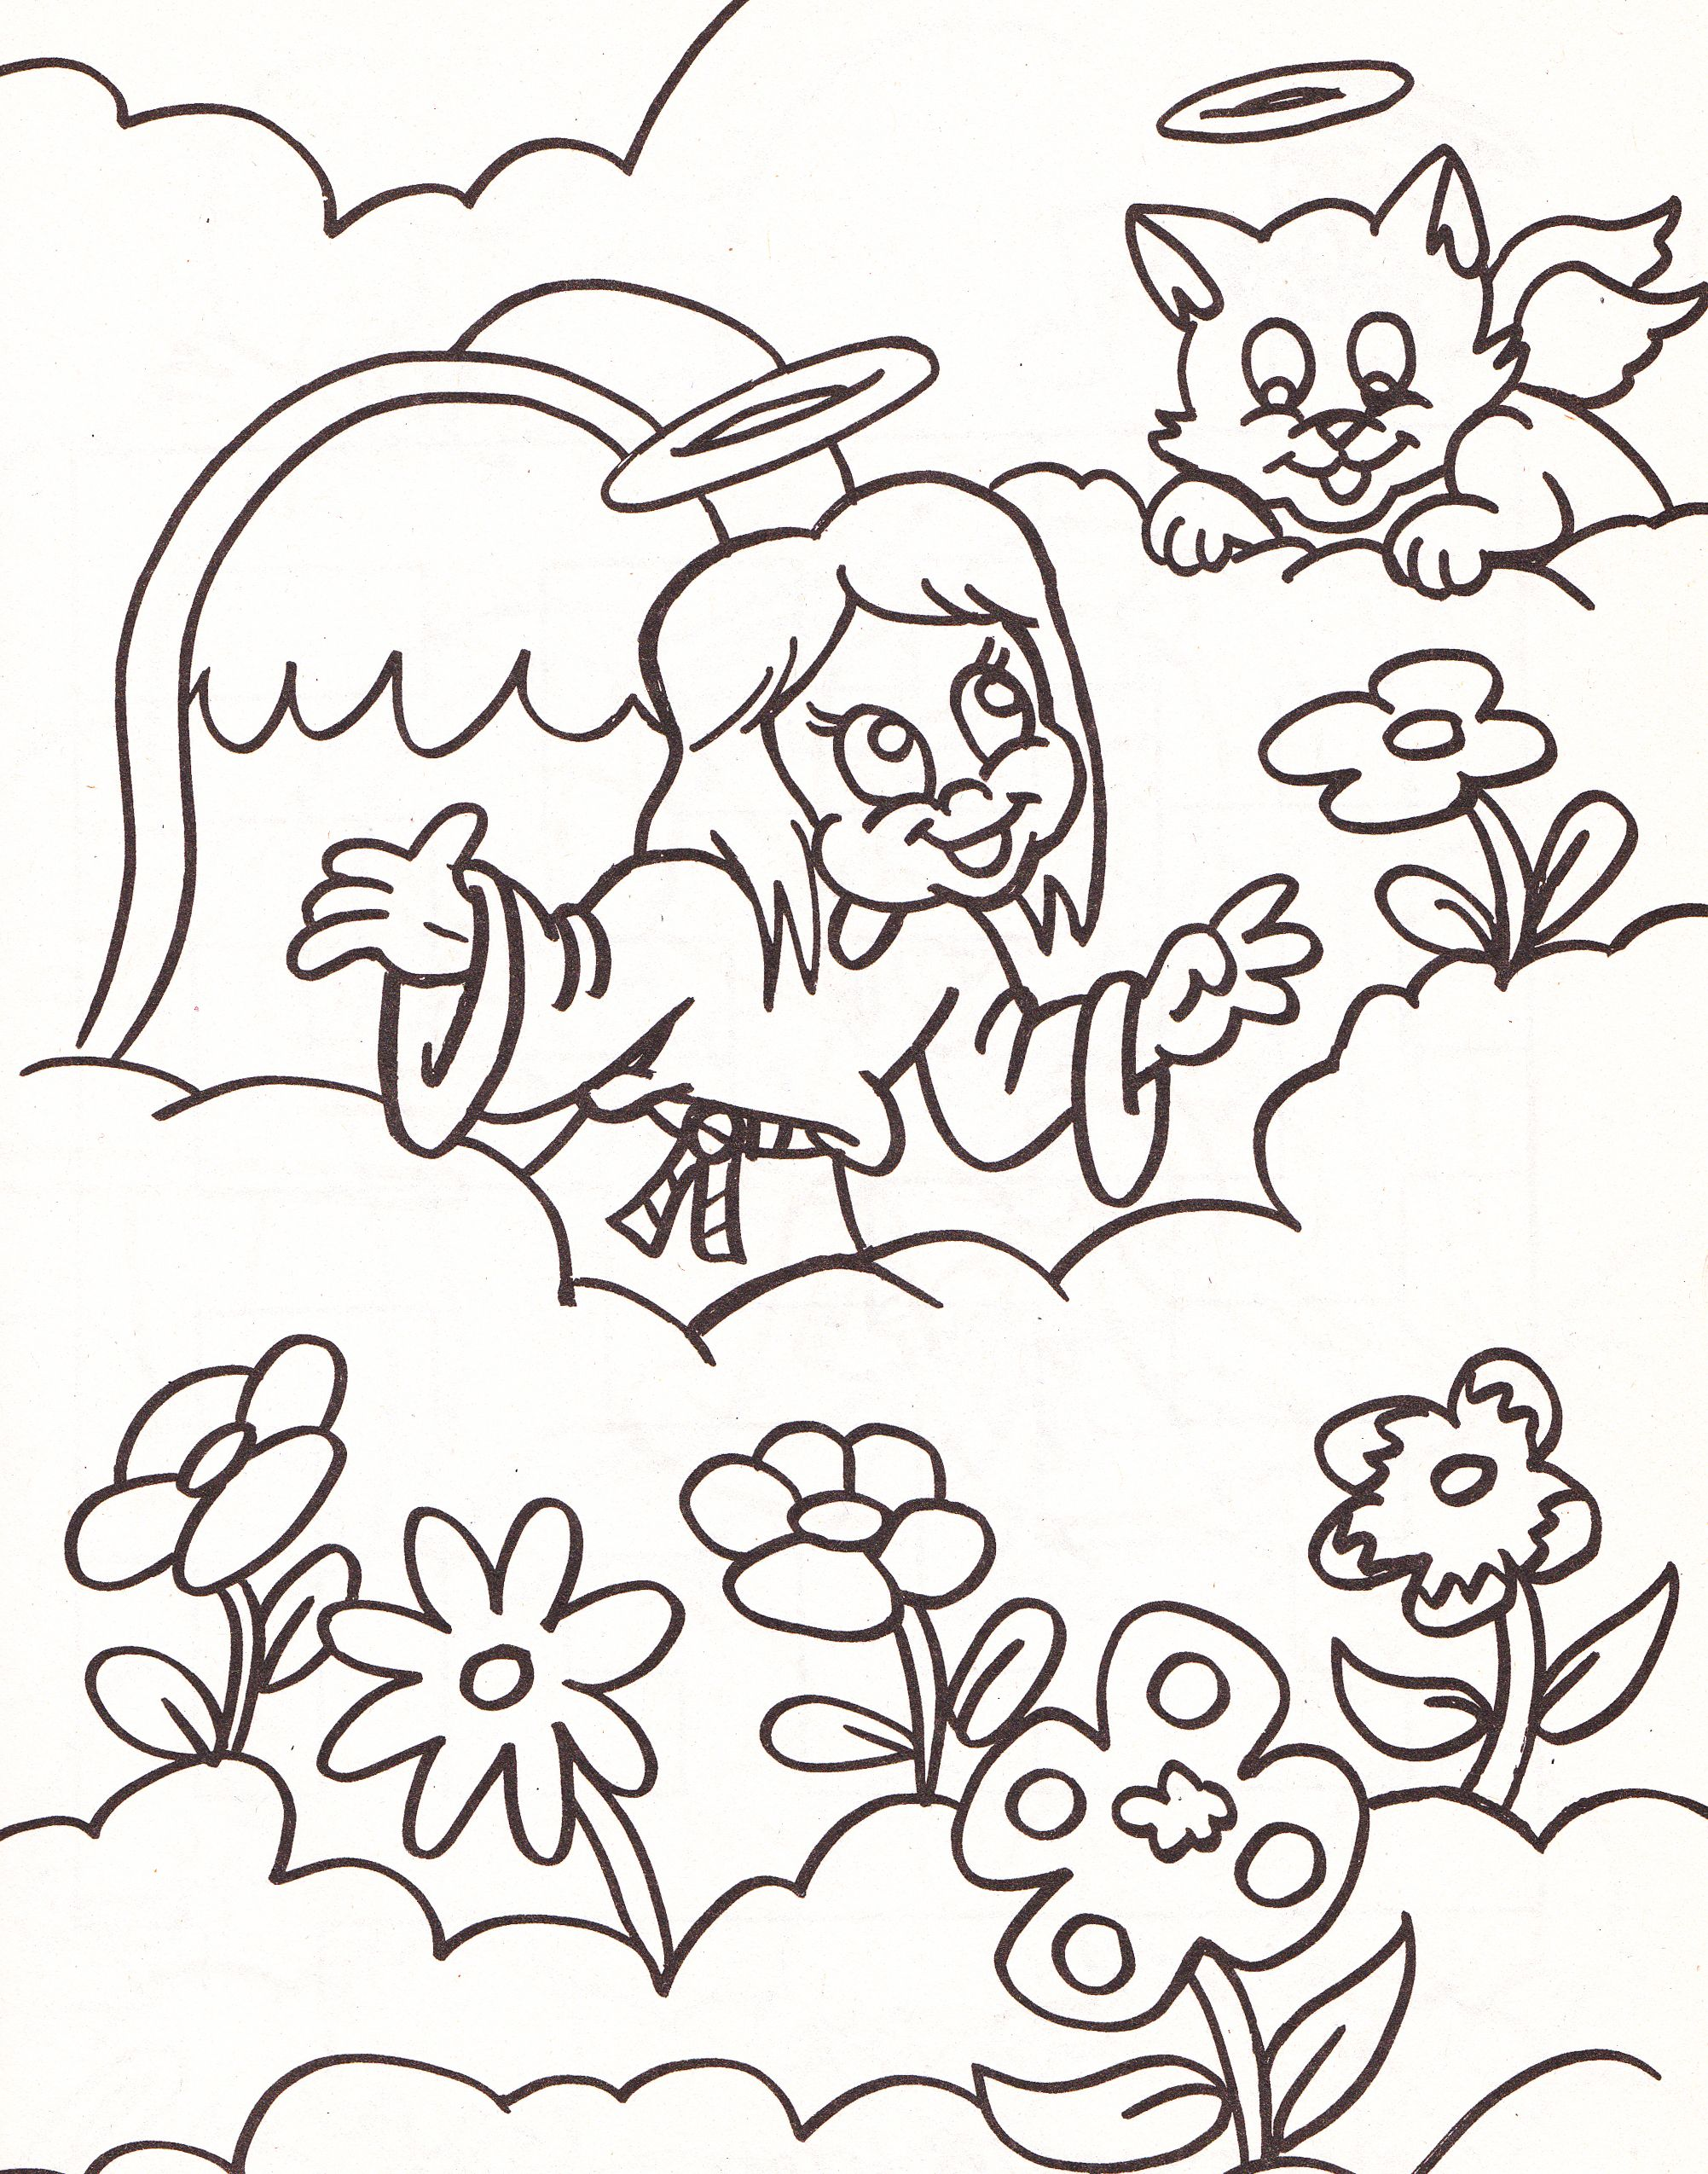 Angel Coloring Page With Cat And Flowers